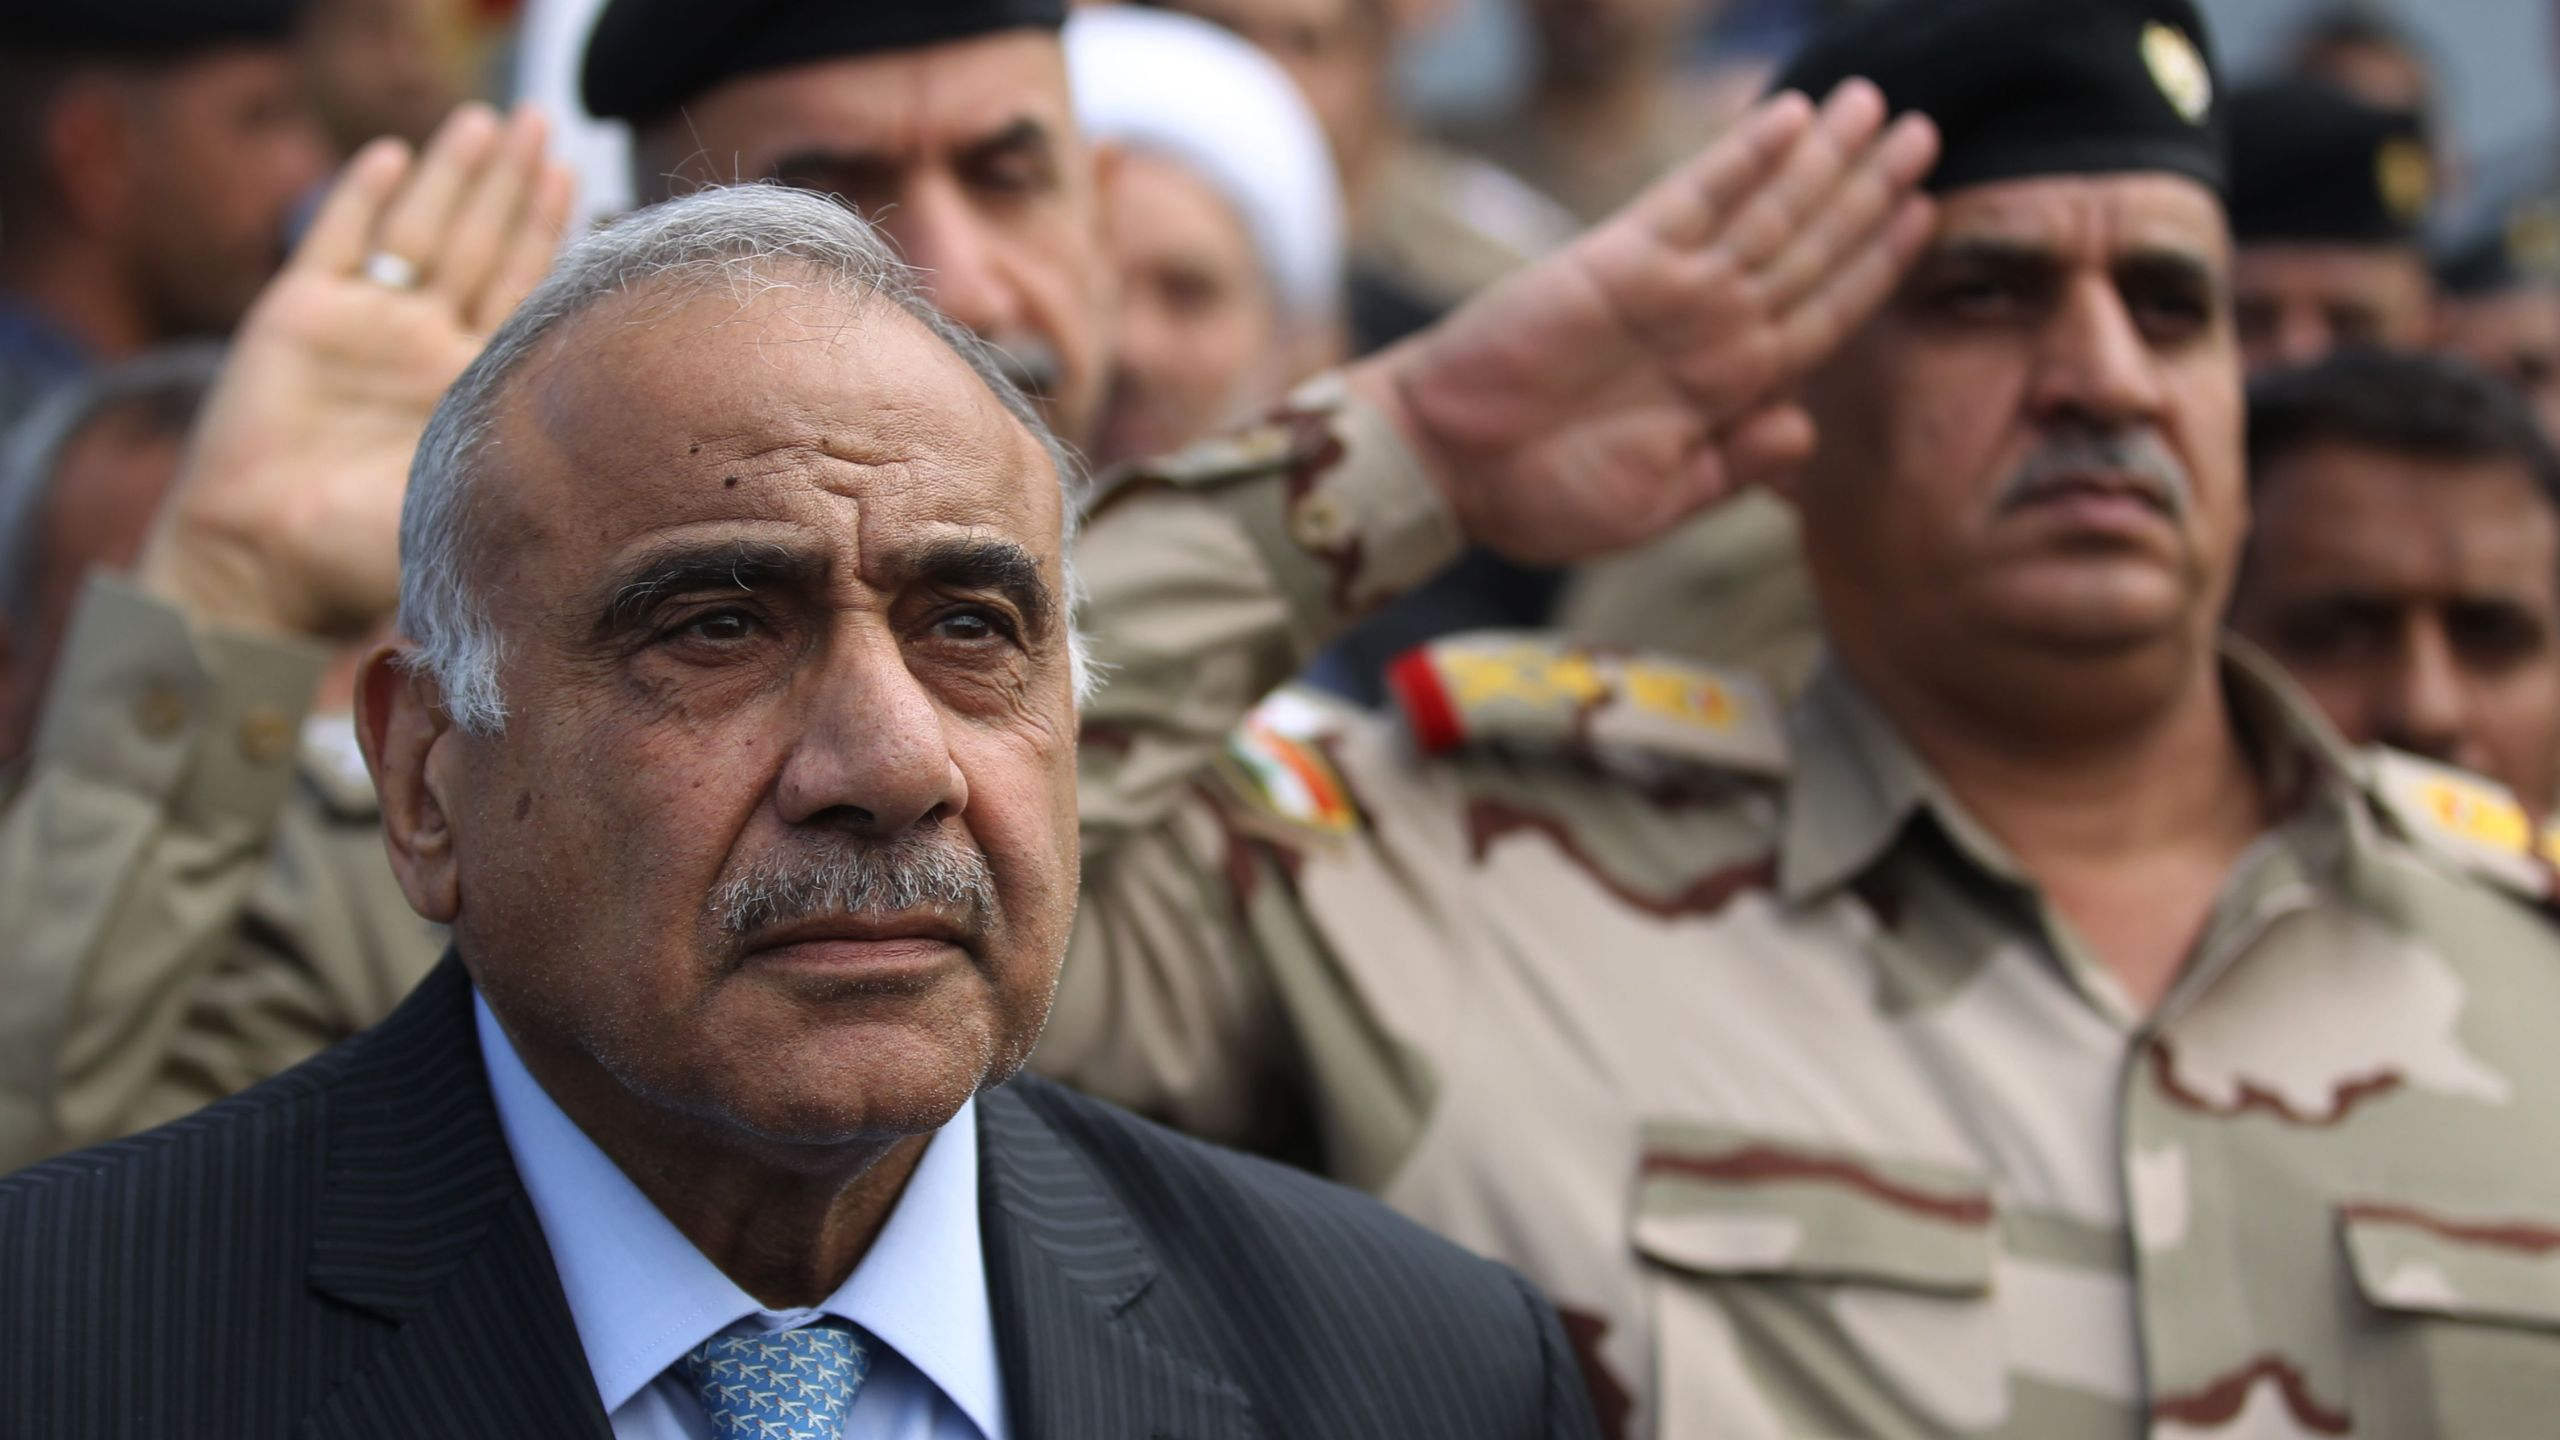 Iraq's Prime Minister Adel Abdel Mahdi speaks during a symbolic funeral ceremony in Baghdad on Oct. 23, 2019, for Major General Ali al-Lami, a commander of the Iraqi Federal Police's Fourth Division, who was killed the previous day in Samarra in the province of Salahuddin, north of the Iraqi capital. (Credit: AHMAD AL-RUBAYE/AFP via Getty Images)